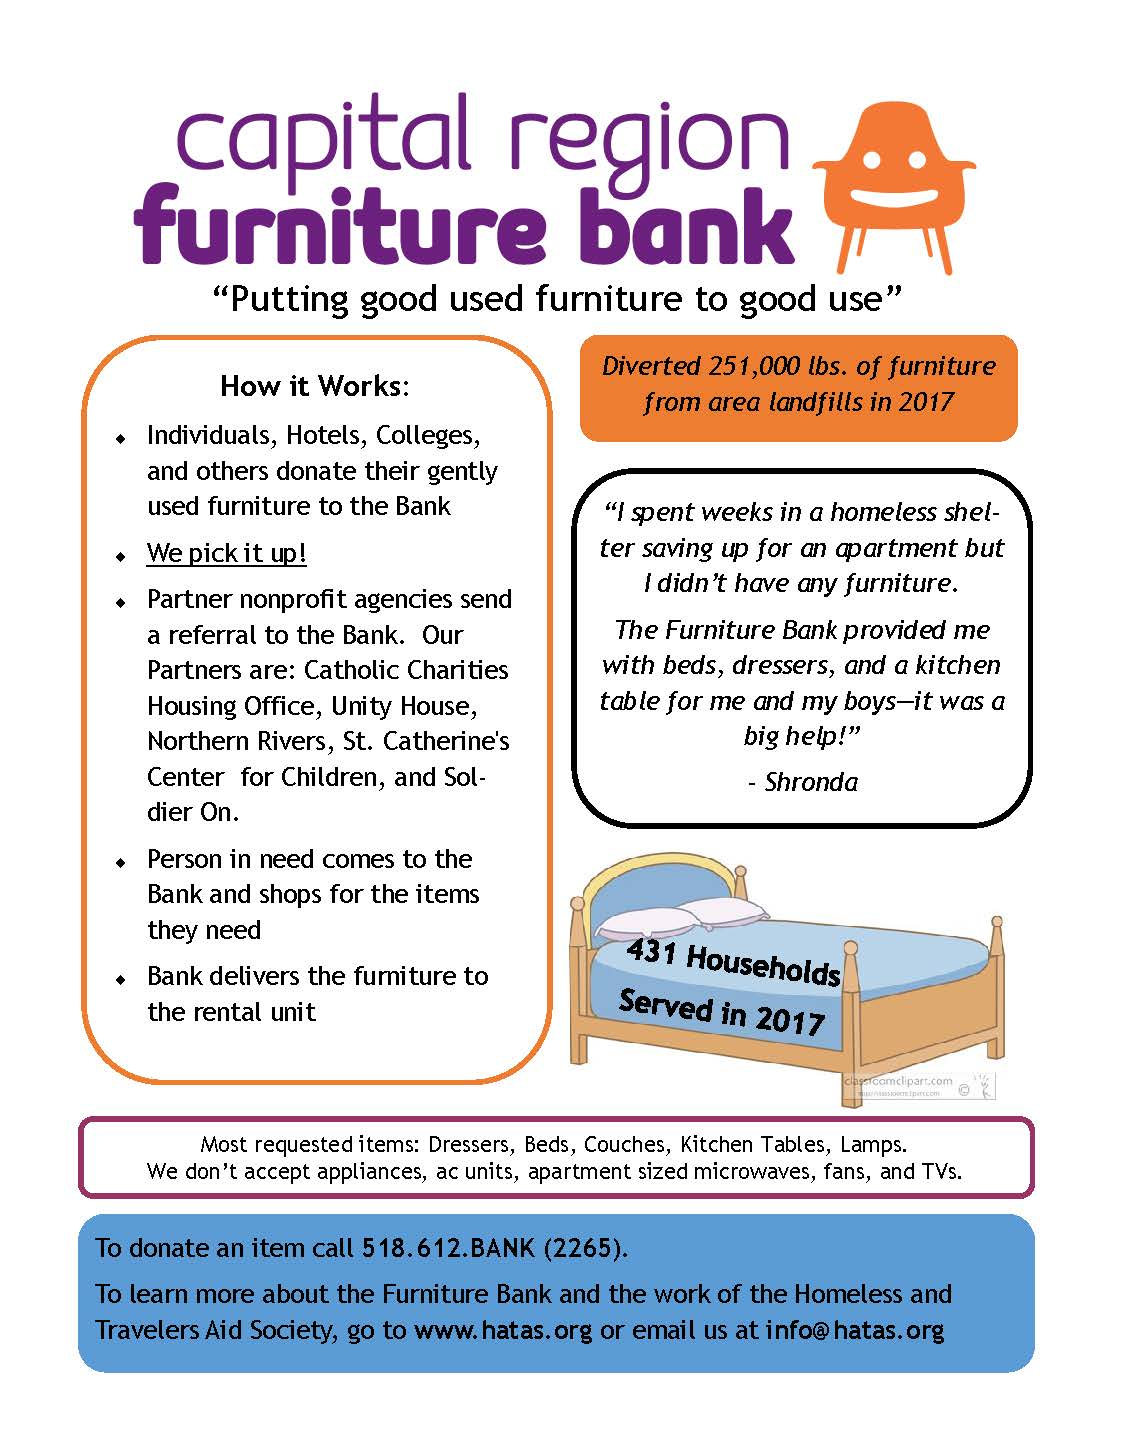 The Homeless U0026 Travelers Aid Society (HATAS) Is Seeking Gently Used  Furniture, Such As Dressers, Beds, Couches, Kitchen Tables, And Lamps. They  Will Pick Up ...